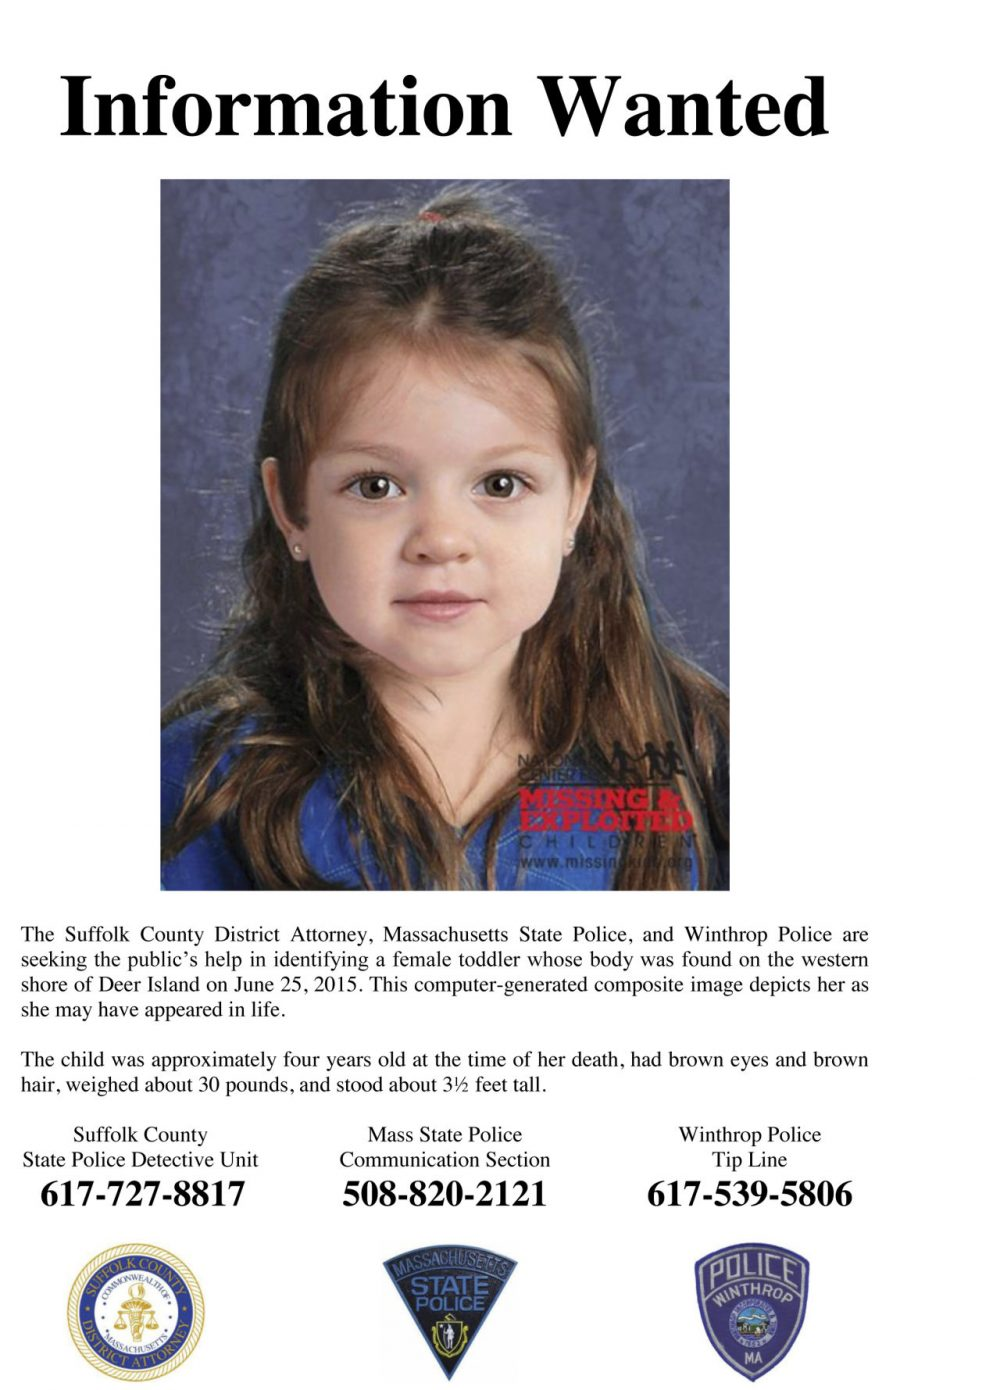 Flyer released July 2015 by the Suffolk County Massachusetts District Attorney includes a computer-generated composite image depicting the possible likeness of a young girl whose body was found on the shore of Deer Island in Boston Harbor in June. (Suffolk County District Attorney via AP, File)